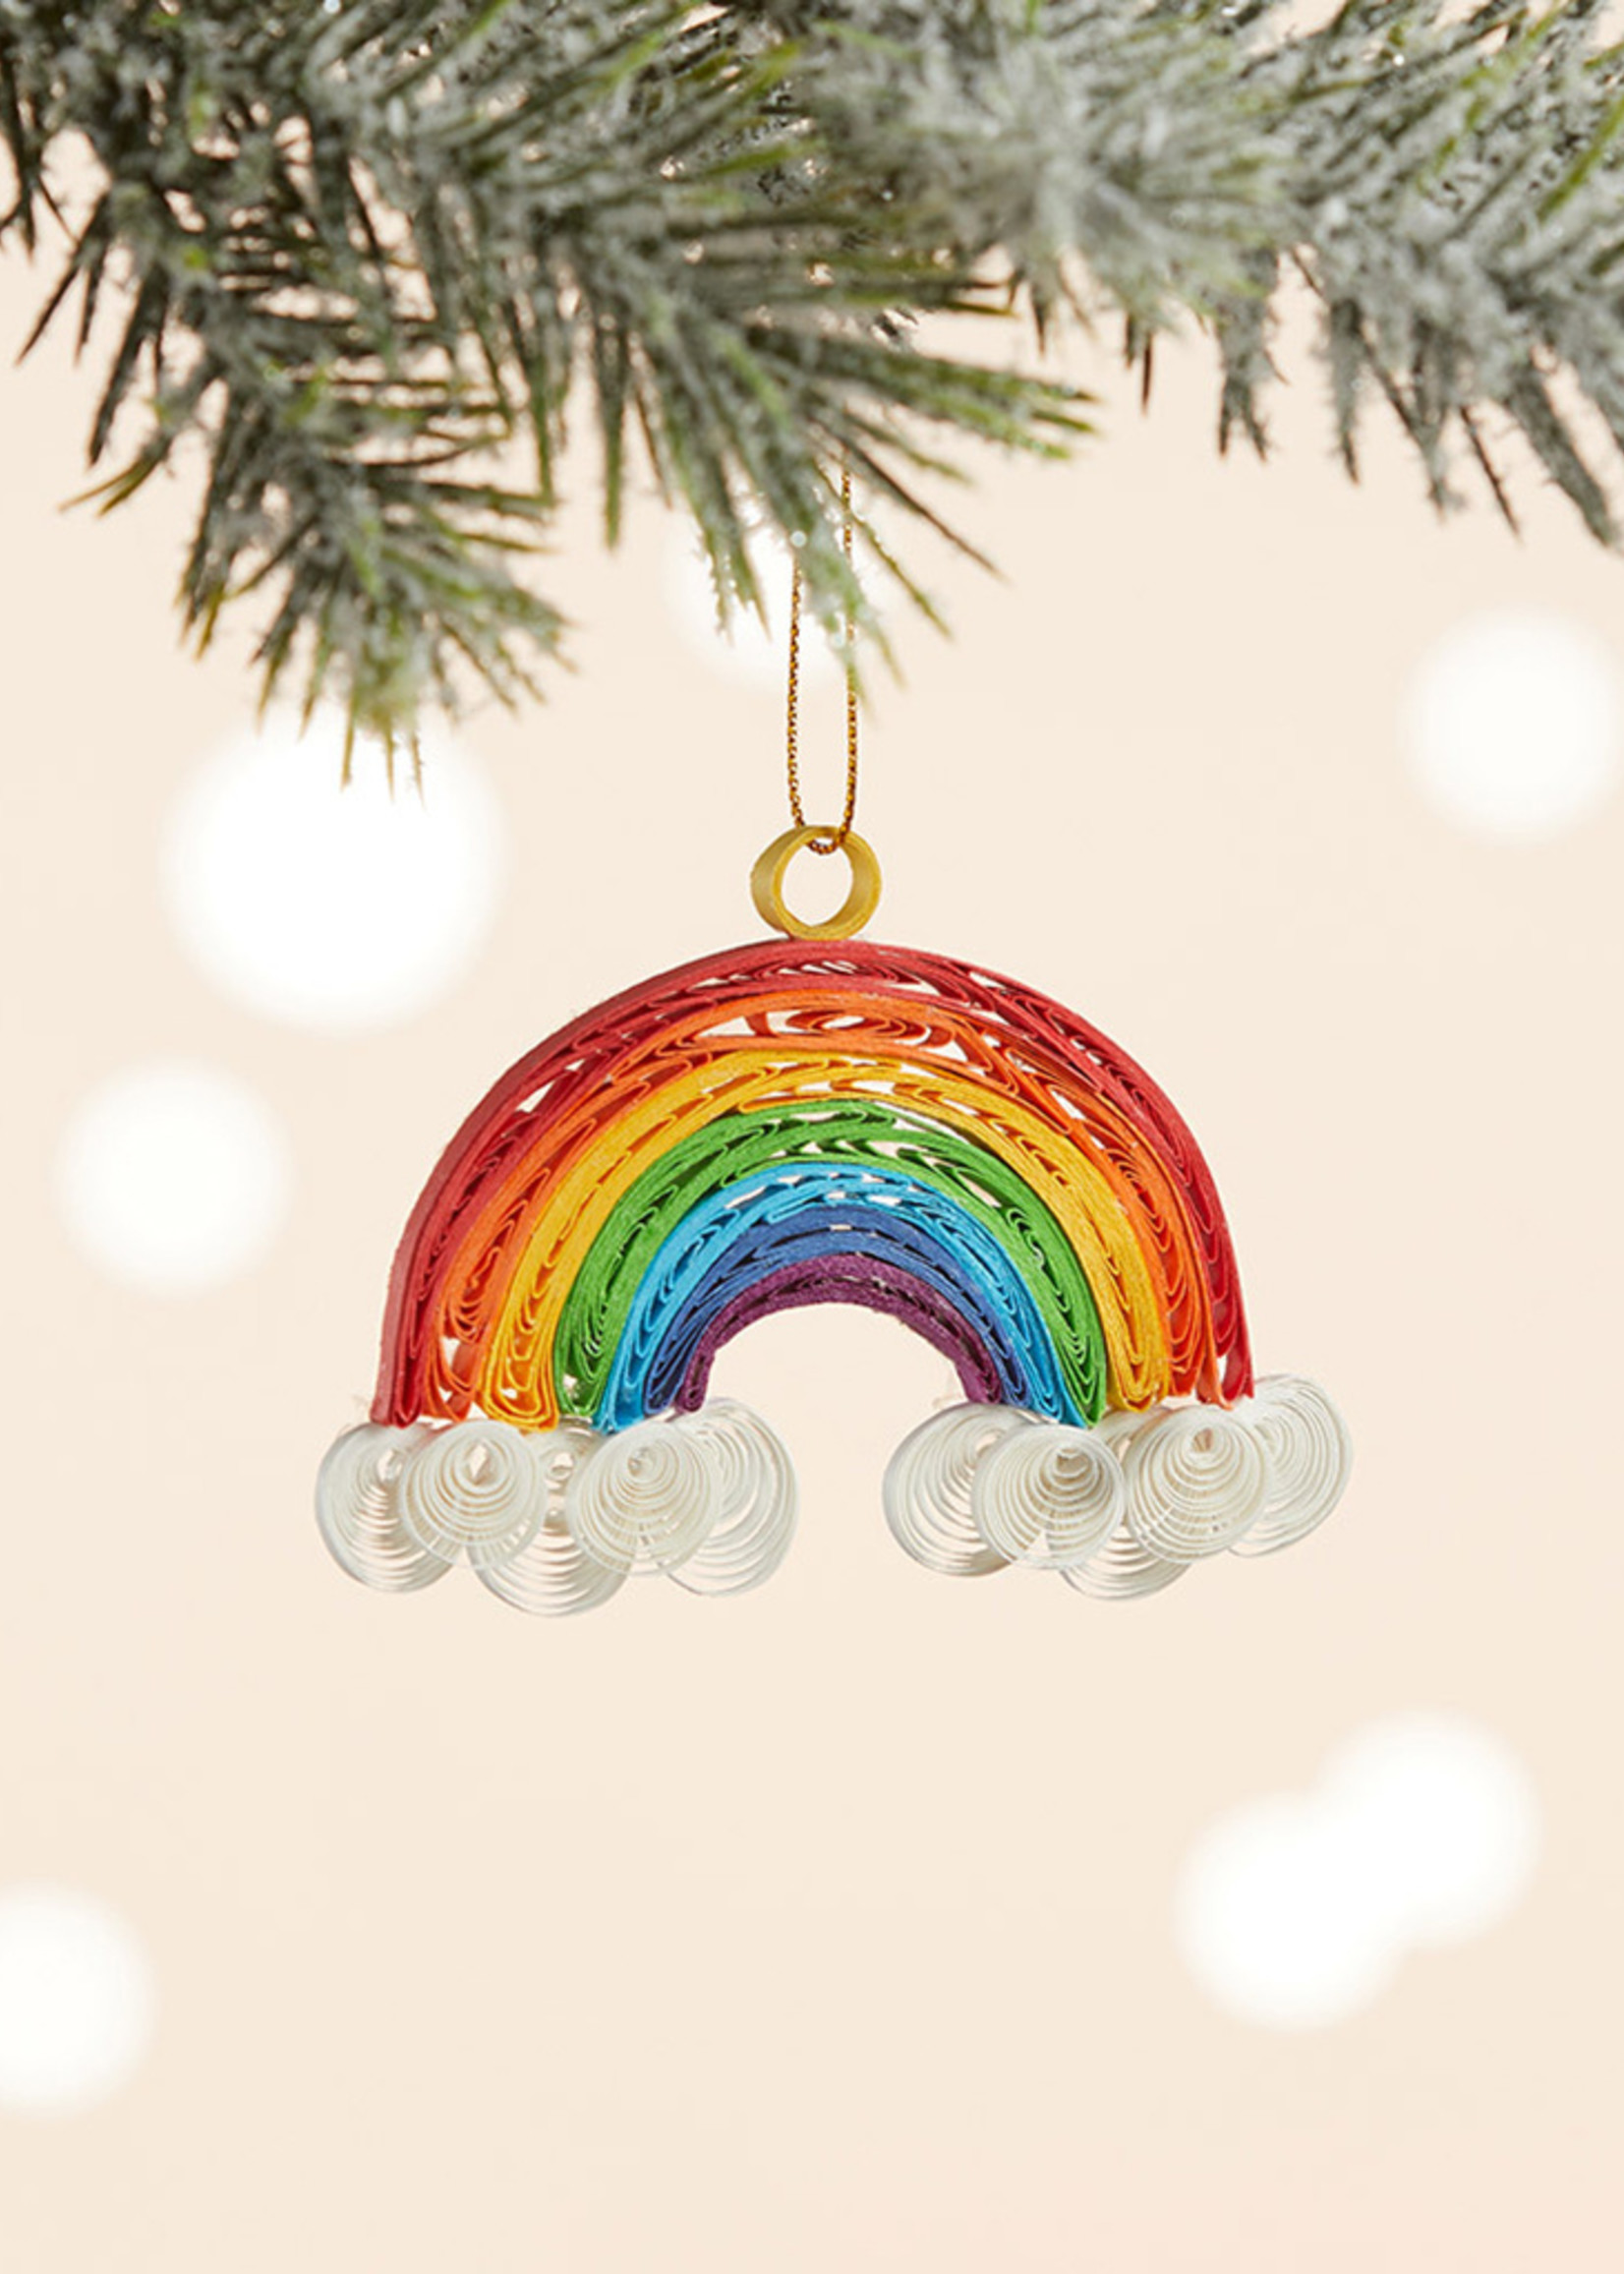 Quilled Rainbow Ornament